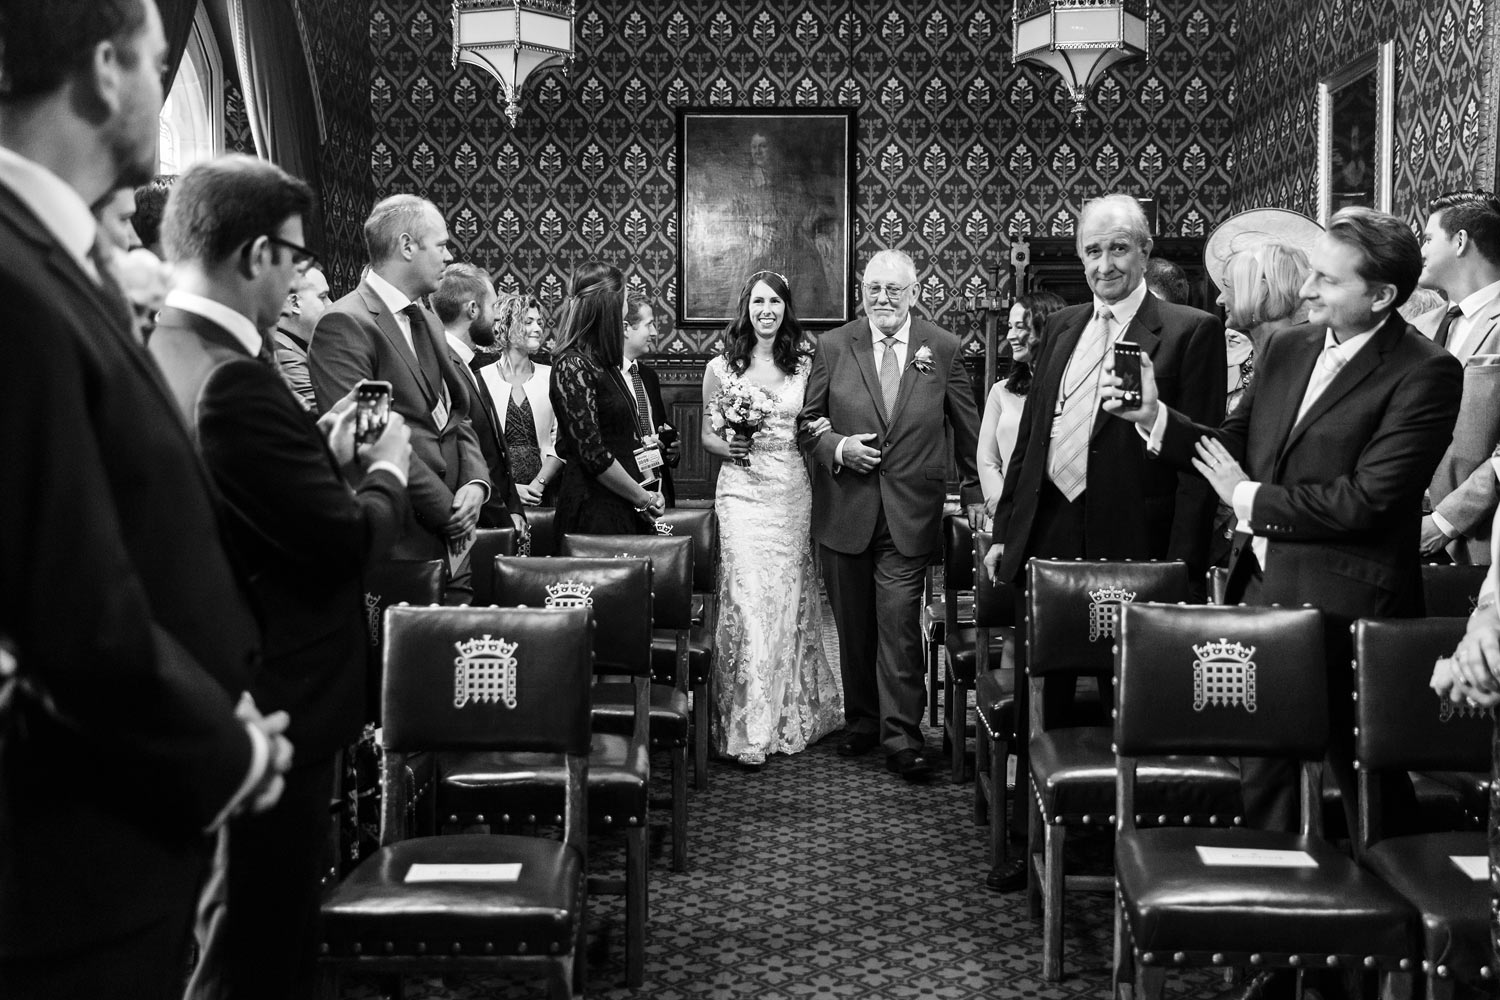 A couple get married at the House of Commons - London wedding photographer